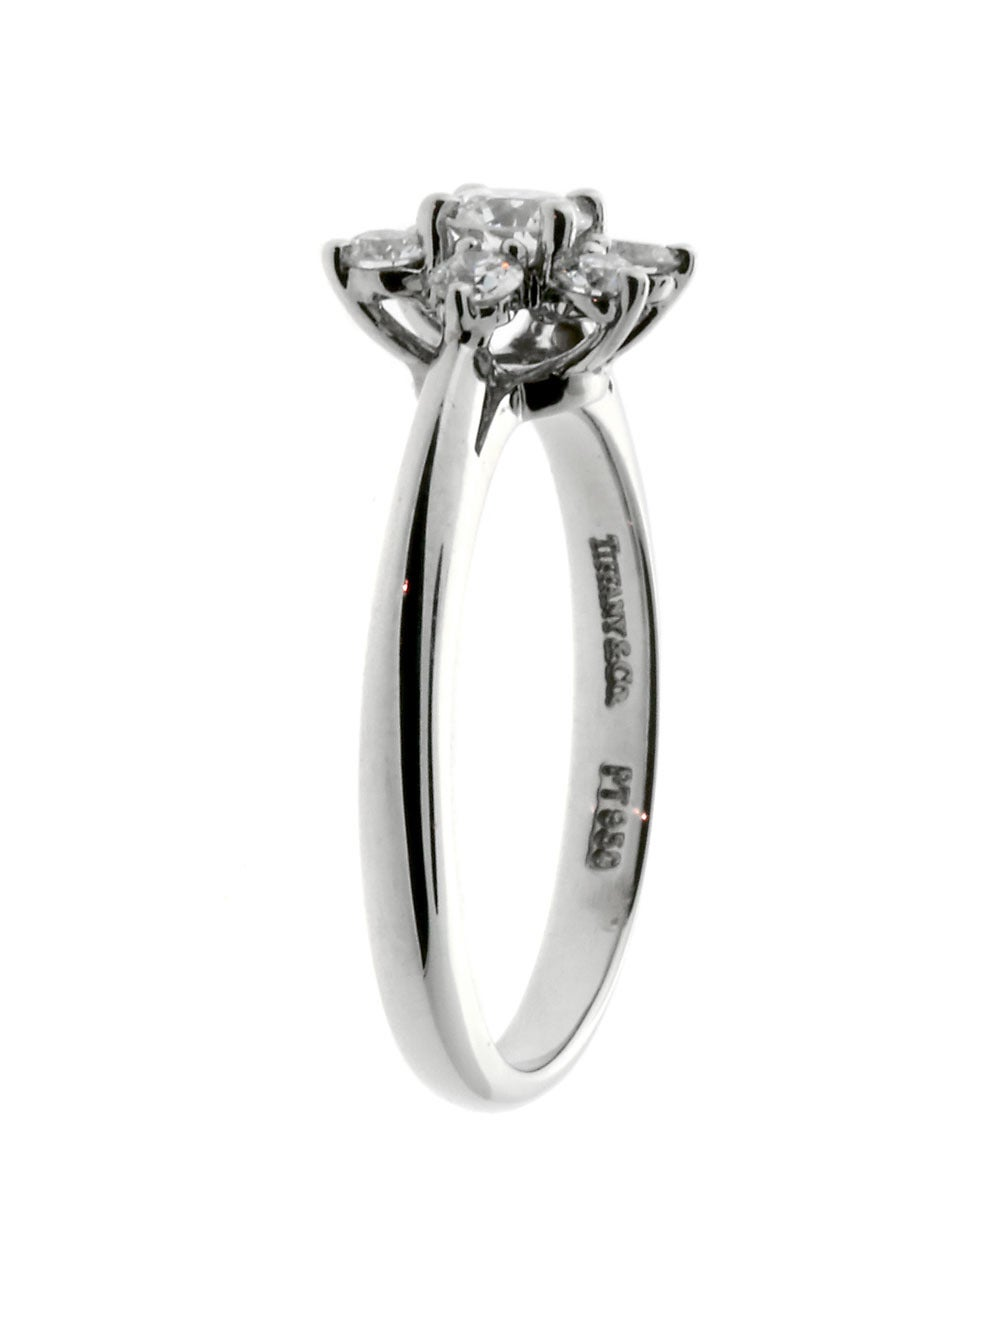 A fabulous authentic Tiffany & Co diamond ring featuring a floral pattern composed of the finest Tiffany & Co Vs Quality round brilliant cut diamonds. (.50ct) in platinum.